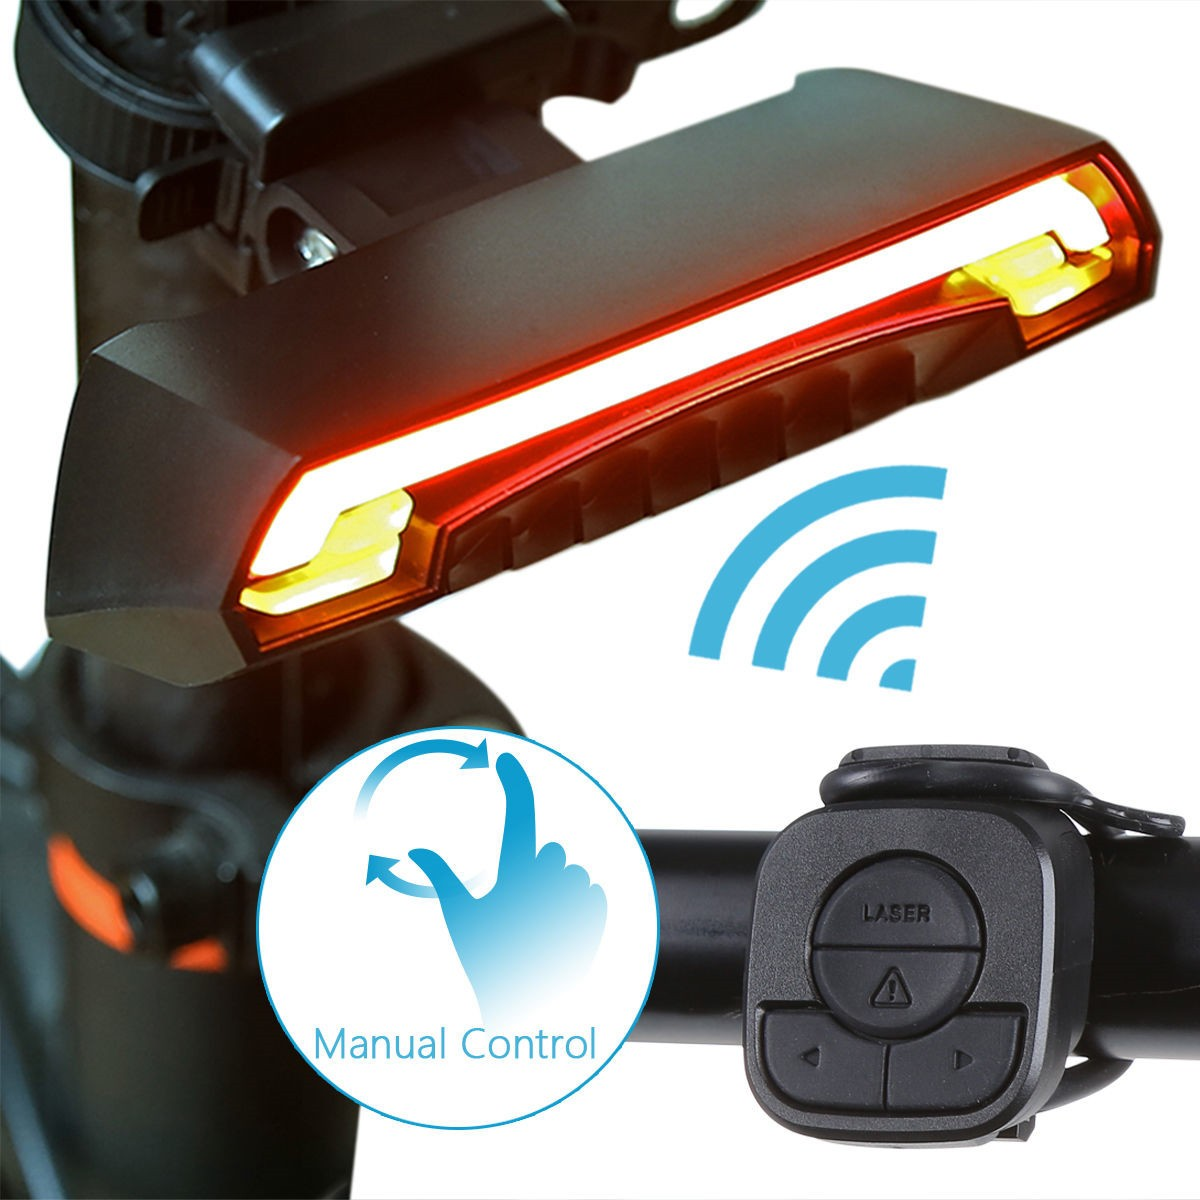 OUTERDO Bicycle LED Rear Laser Light USB Charging Wireless Remote Turning Indicator 95 X 47 X 30 mm MTB LED Lamp